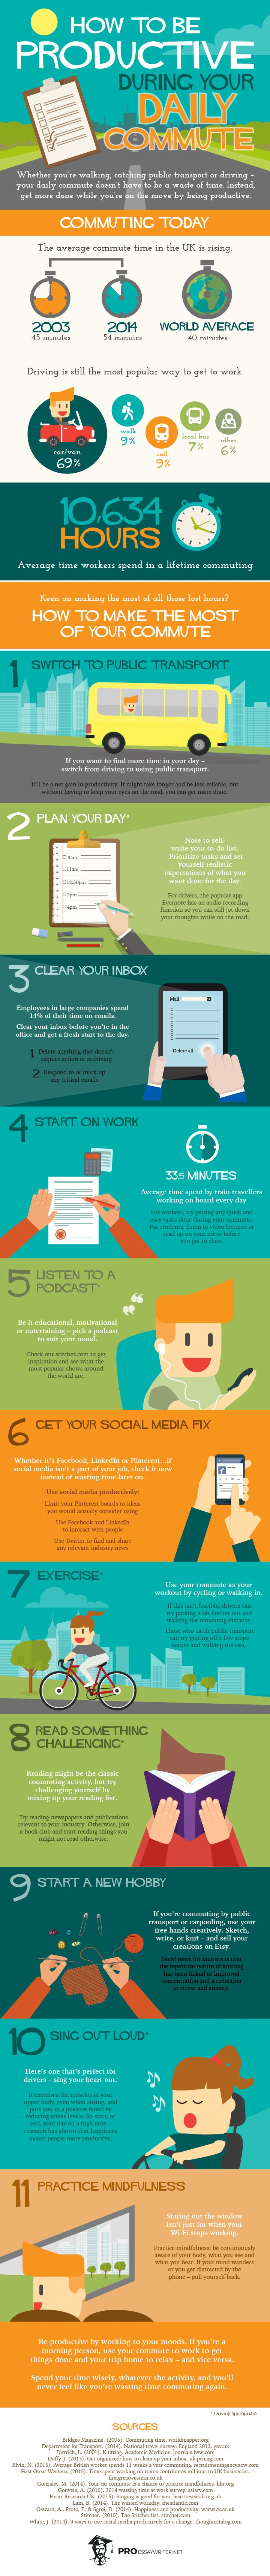 How to be Productive During your Daily Commute #infographic #Productivity #HowTo…